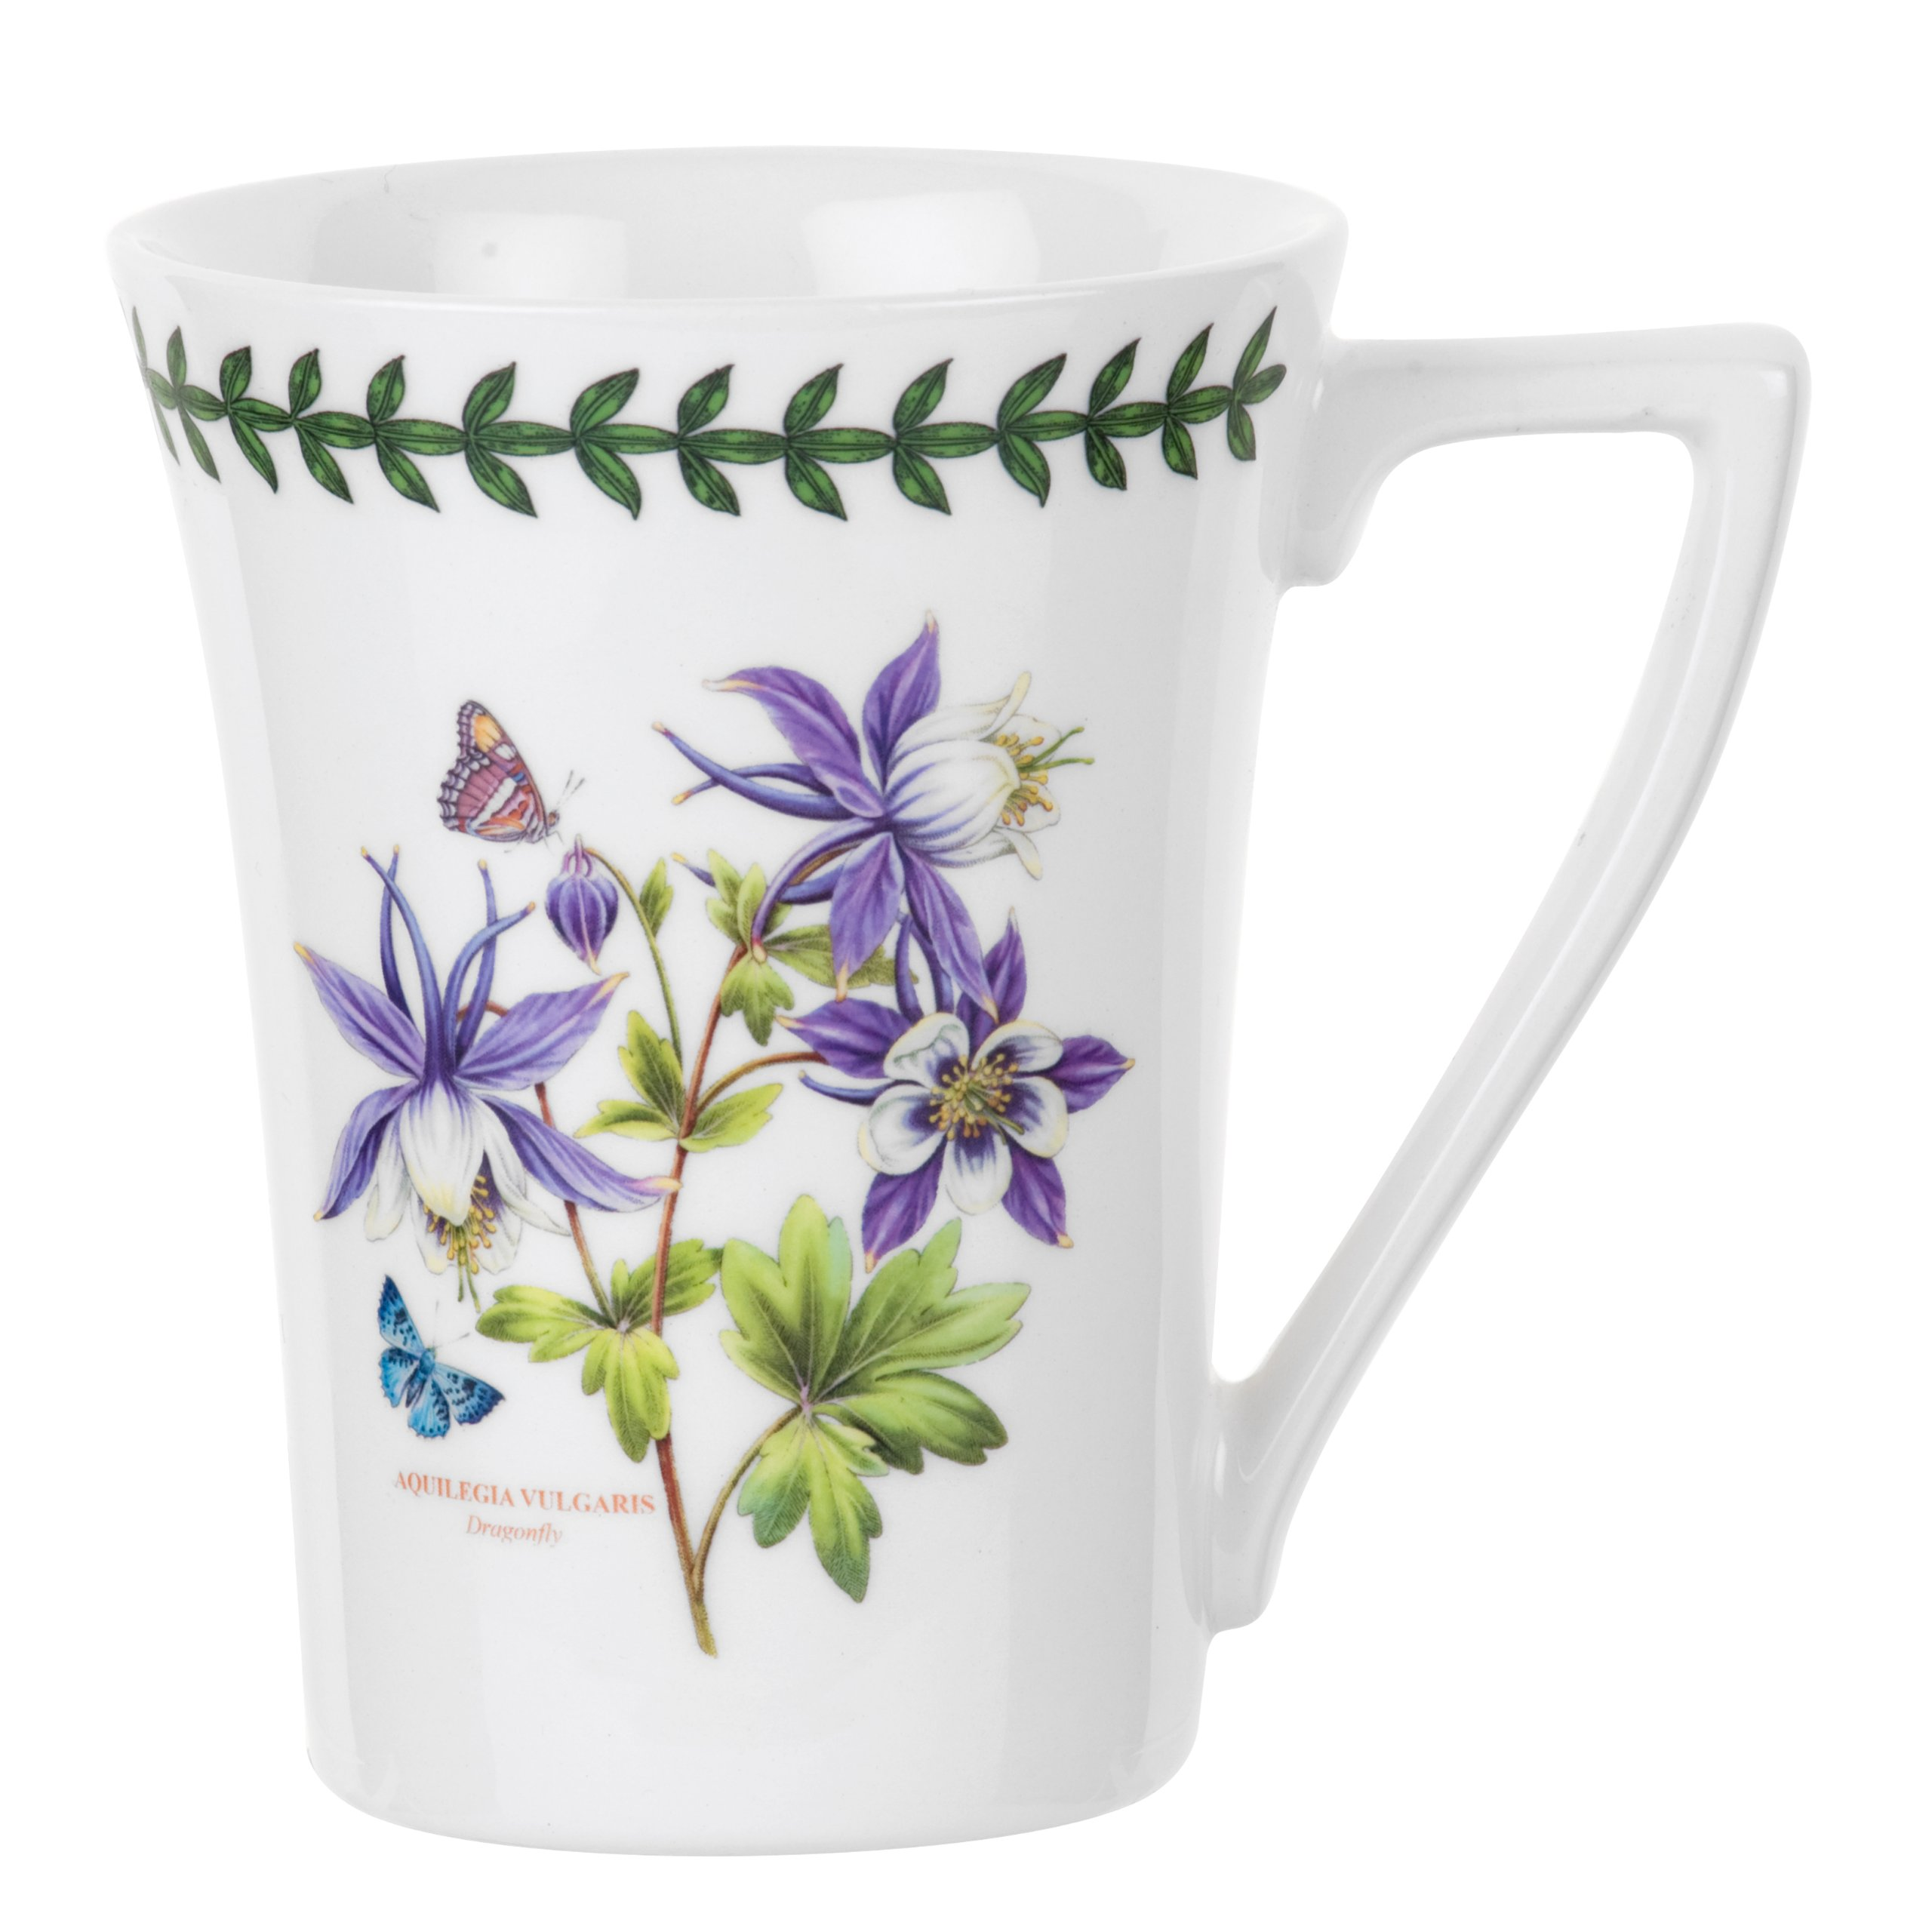 Portmeirion Exotic Botanic Garden Mandarin Mug with Dragonfly Motif, Set of 6